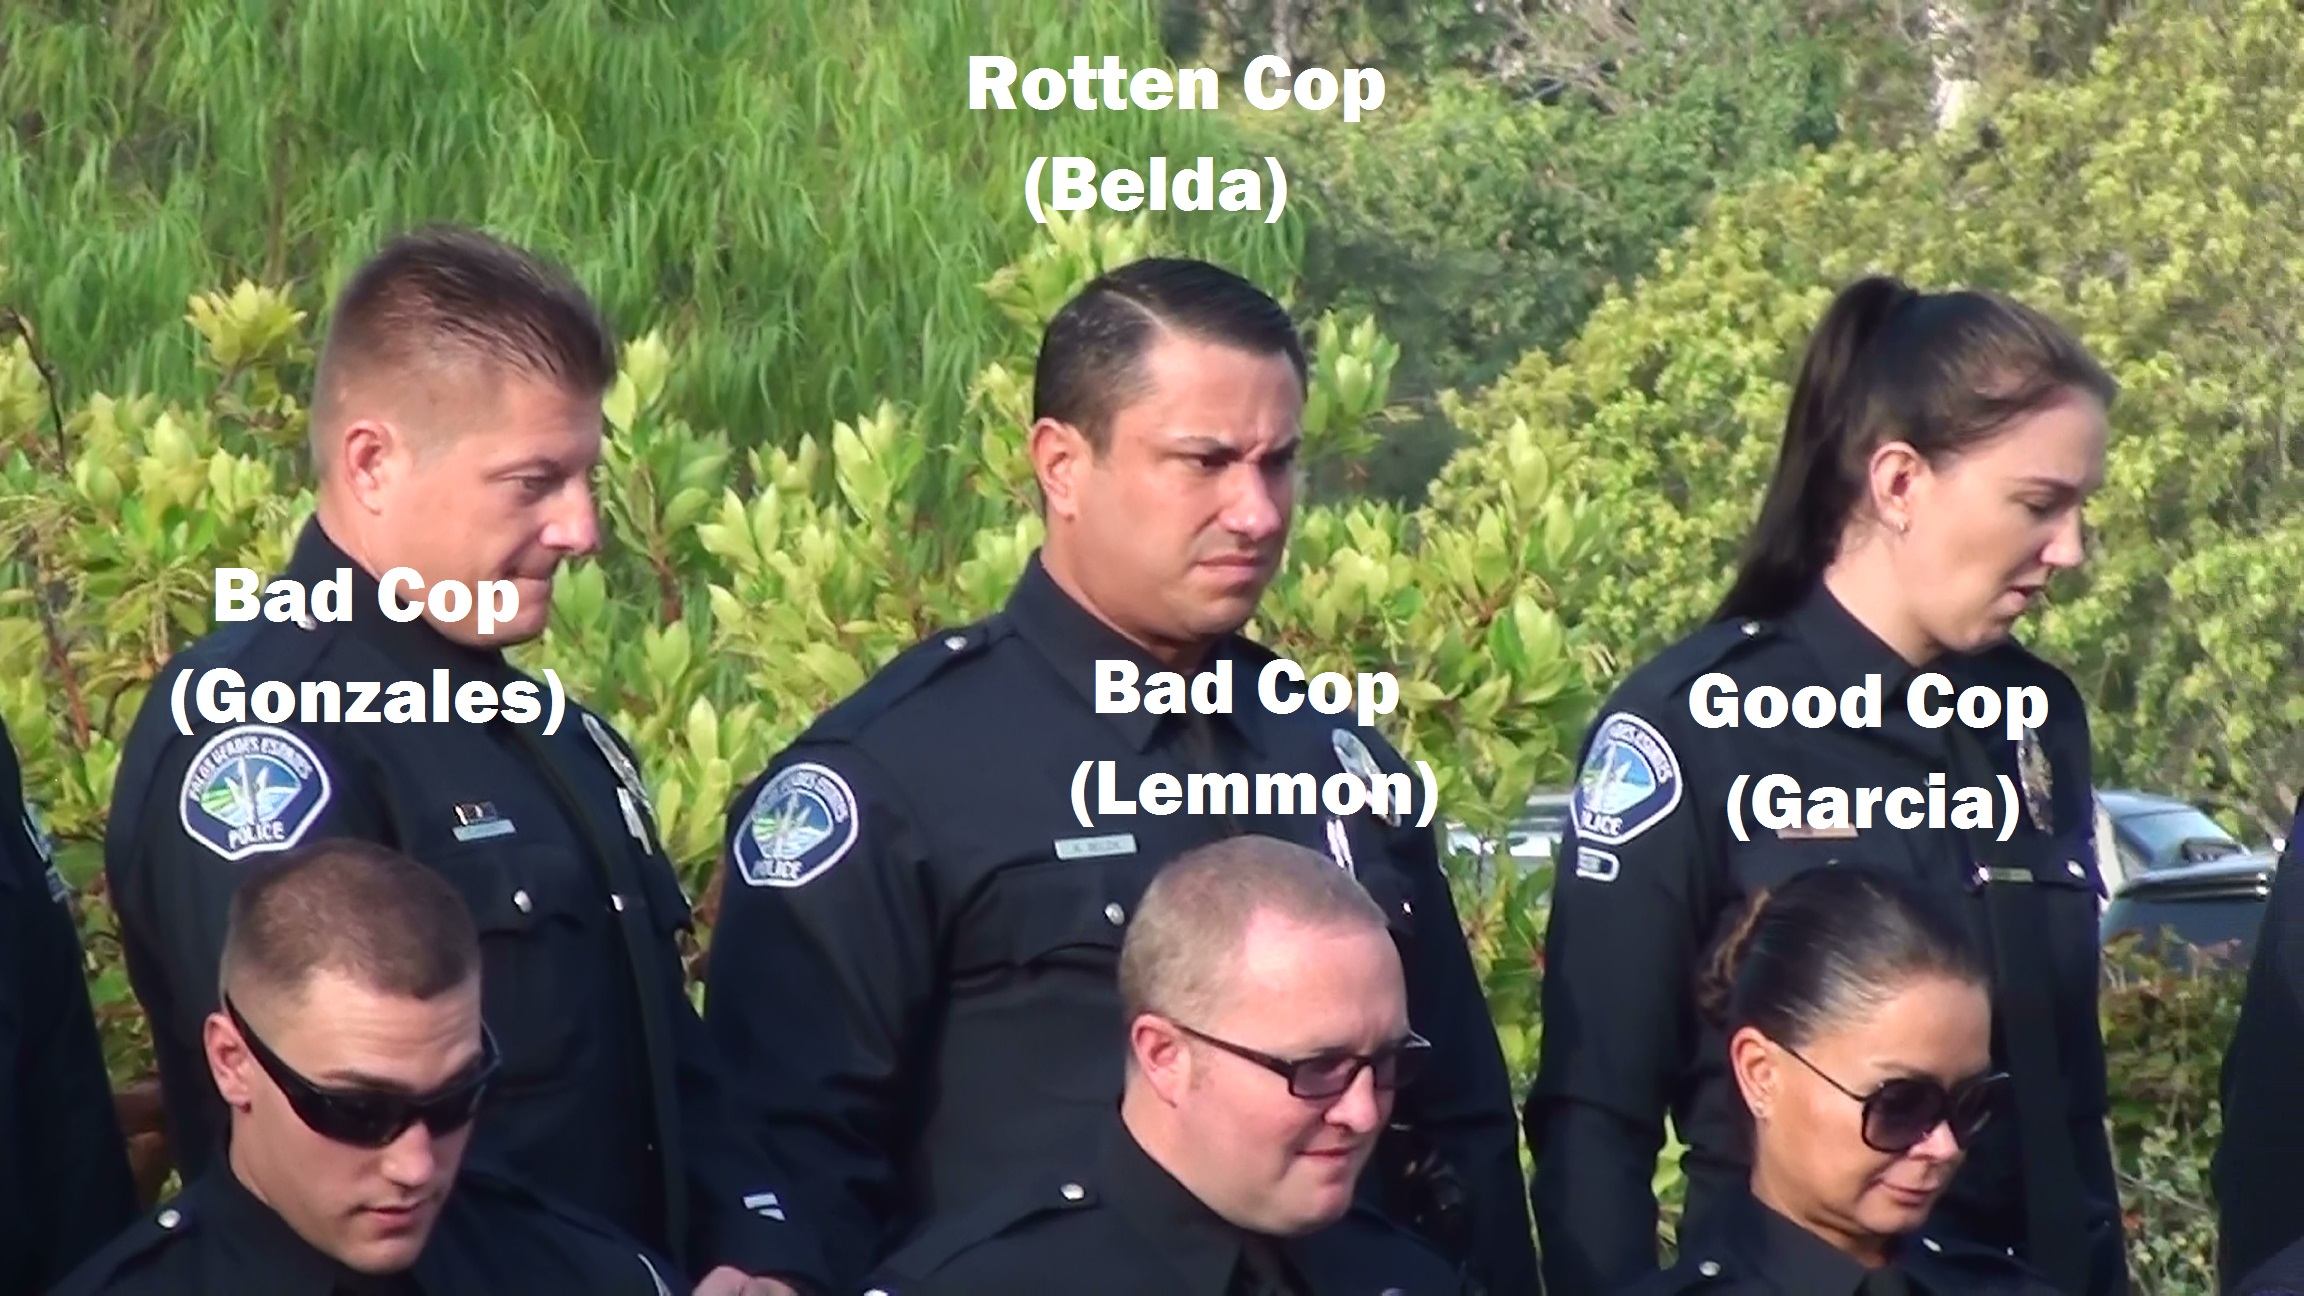 Belda Aaron Gonzales Alex 6 Officers Photo Day 09-22-2015 - Annotated